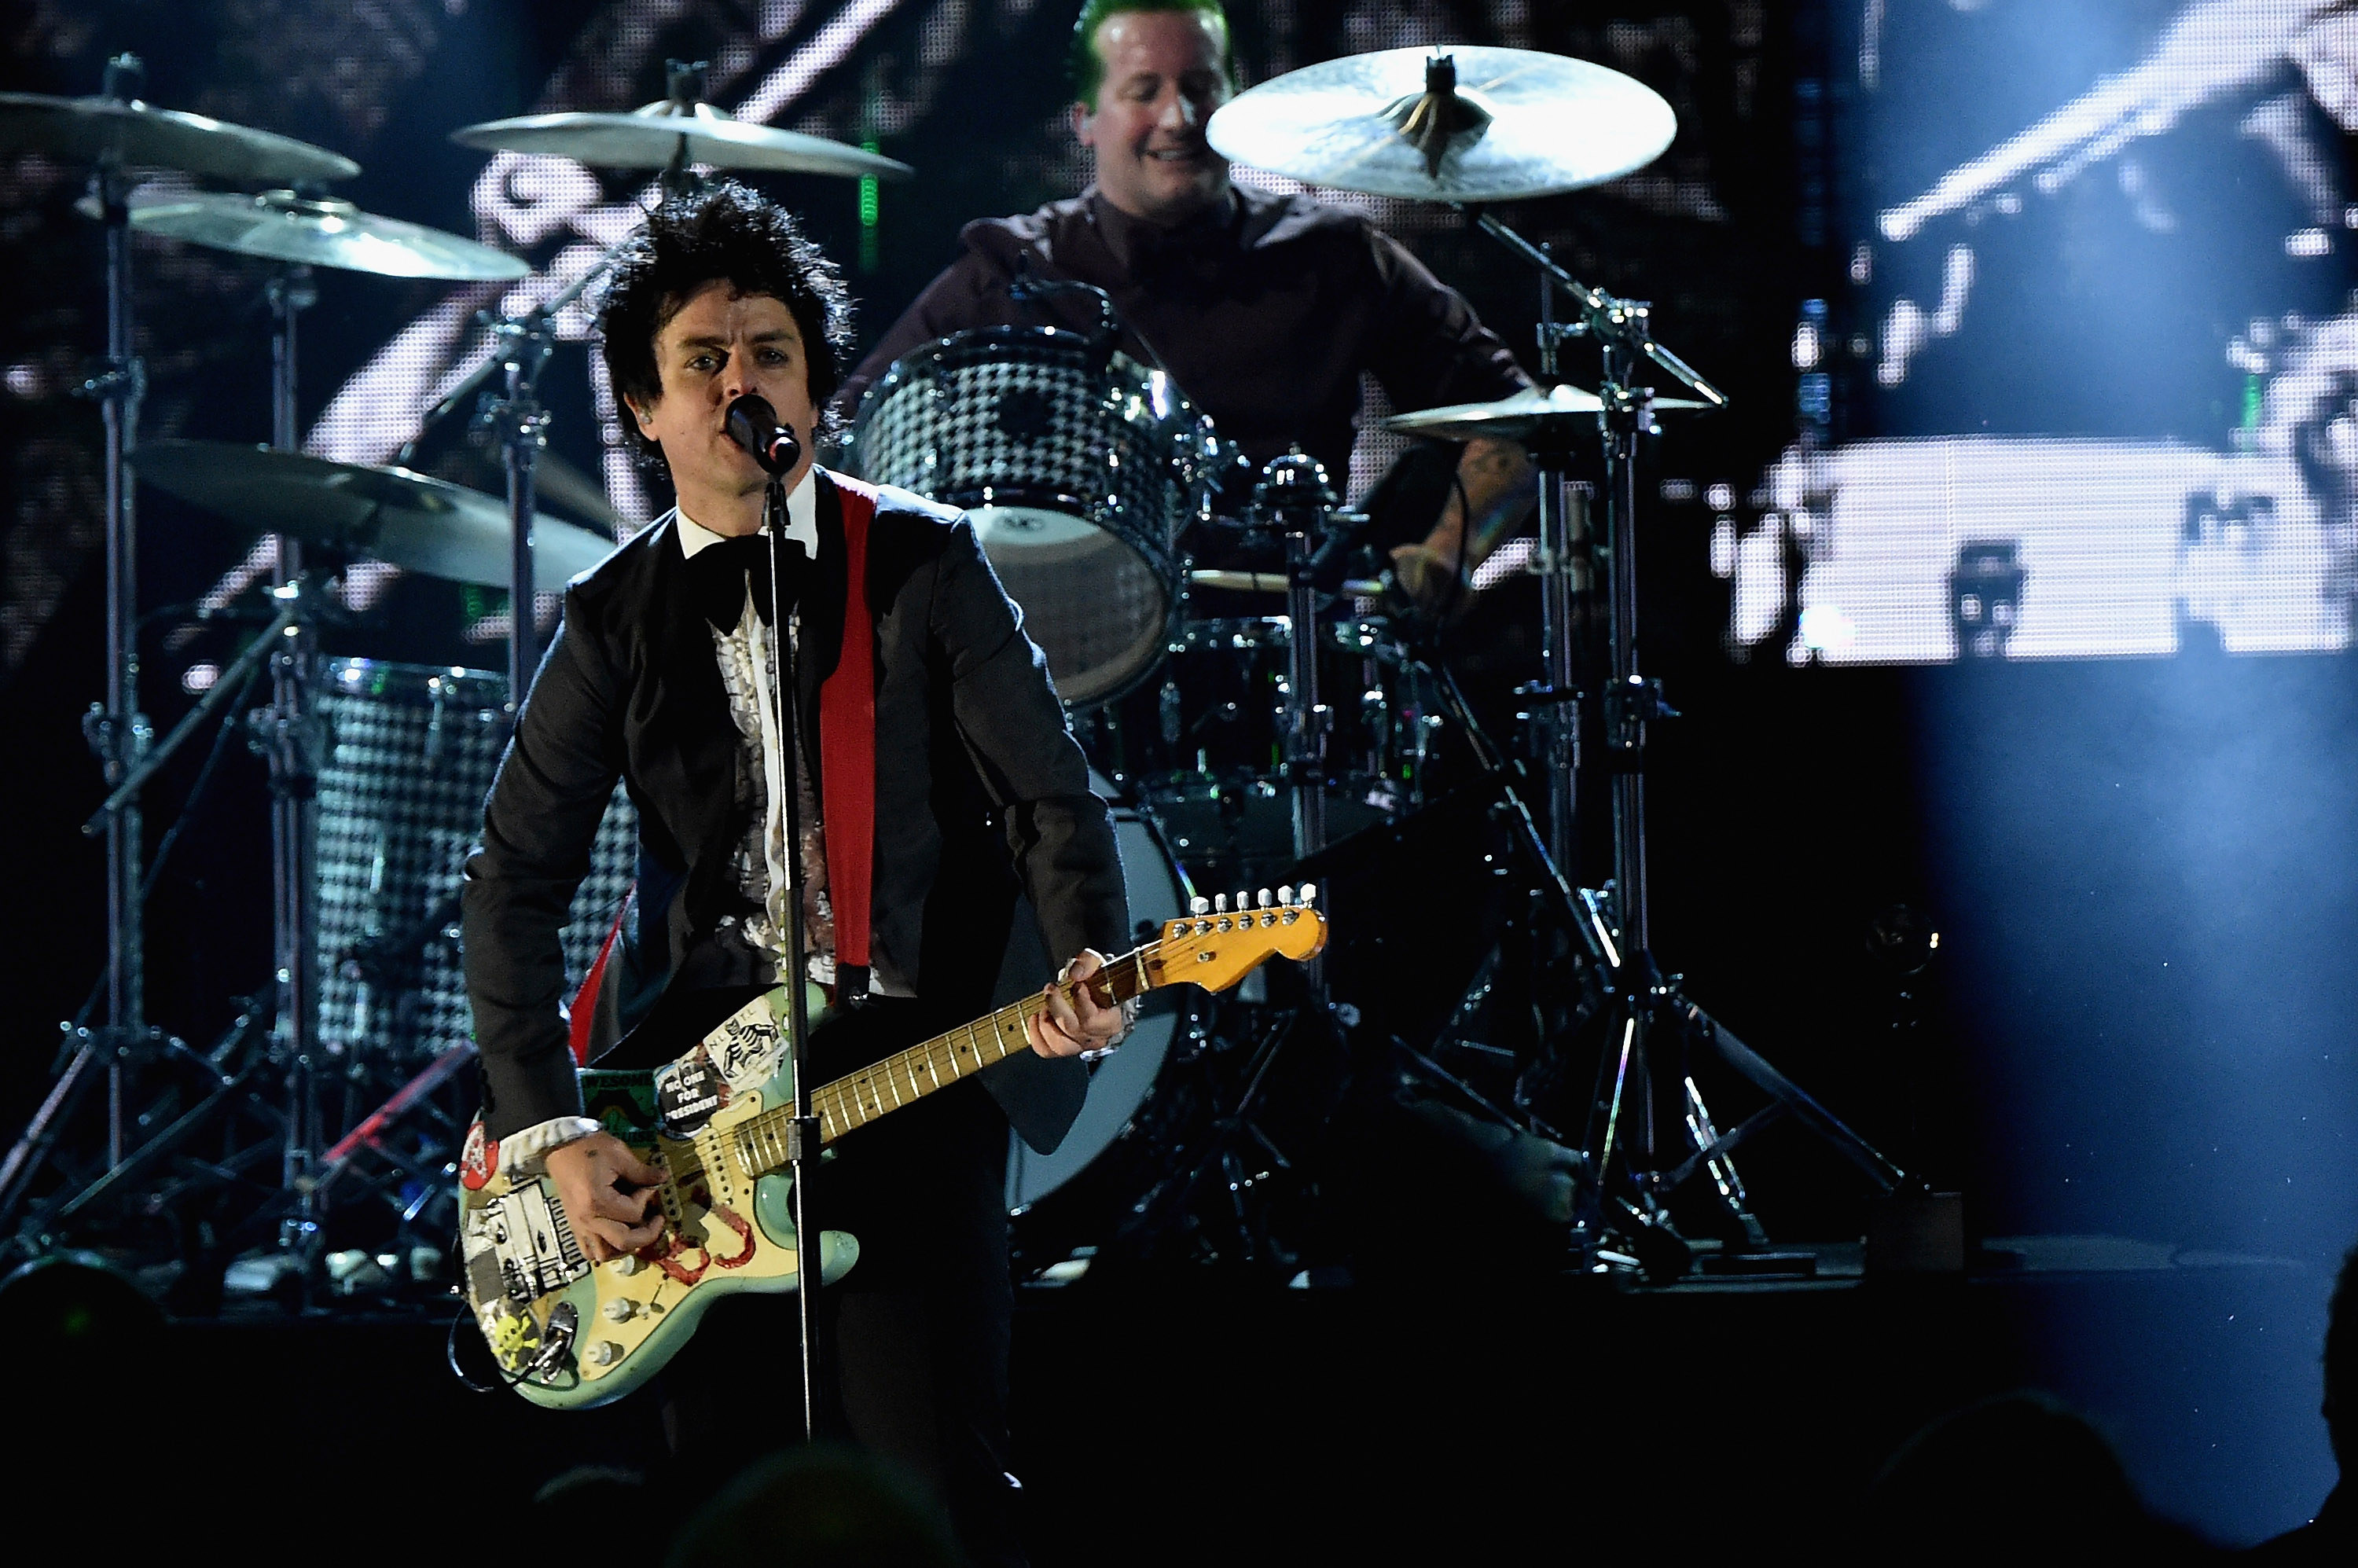 Green Day performs on stage during the 30th Annual Rock And Roll Hall Of Fame Induction Ceremony in 2015 in Cleveland. (Mike Coppola/Getty Images)